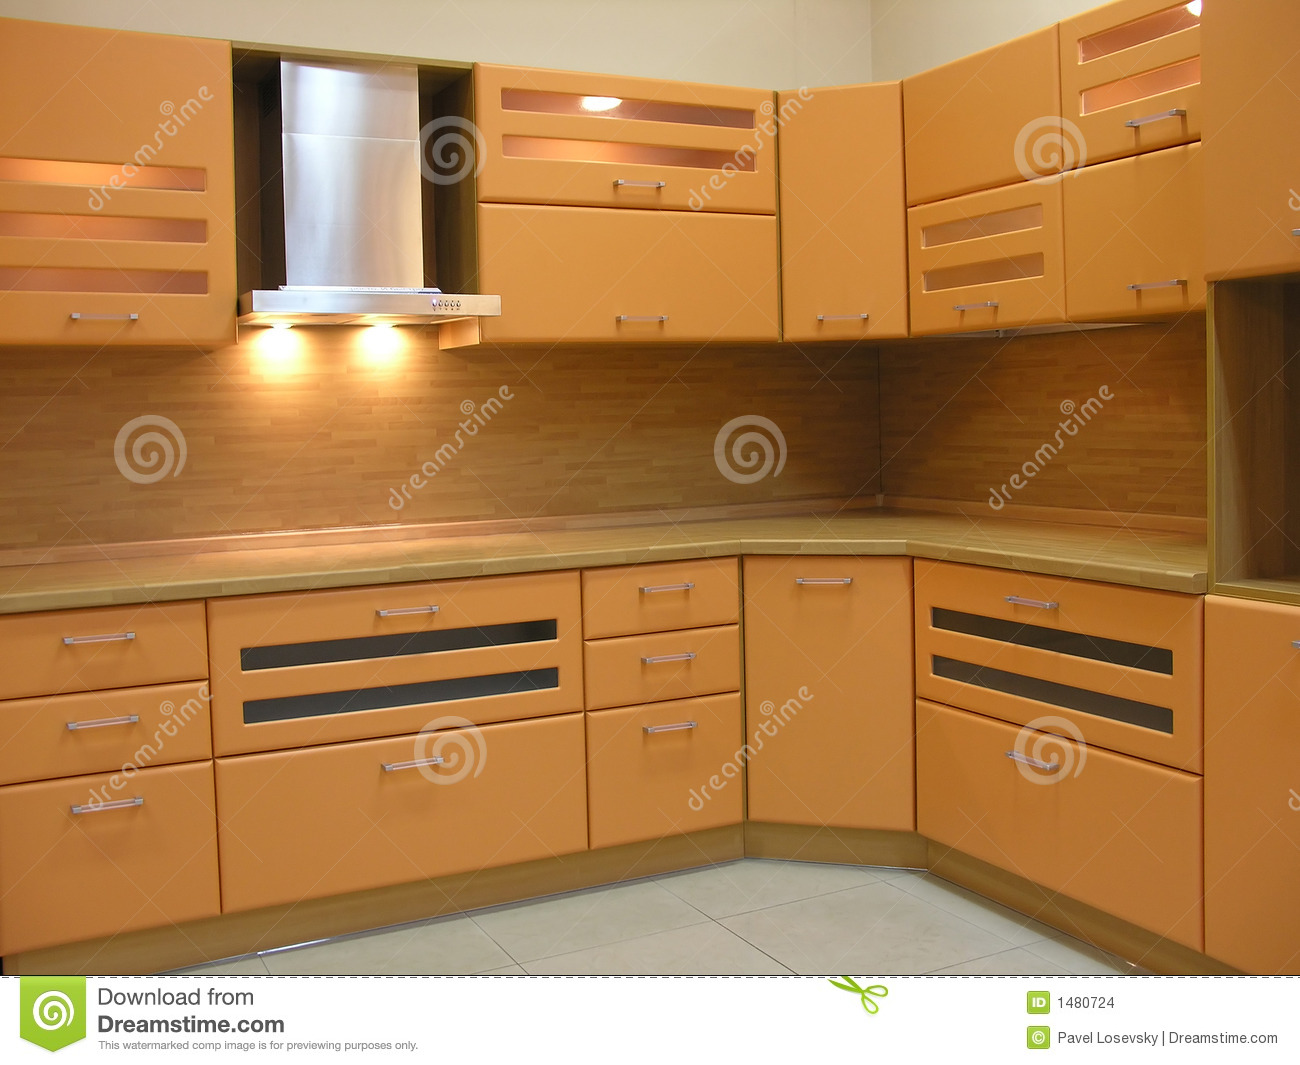 Light brown kitchen stock photo image of kitchen layout 1480724 light brown kitchen workwithnaturefo